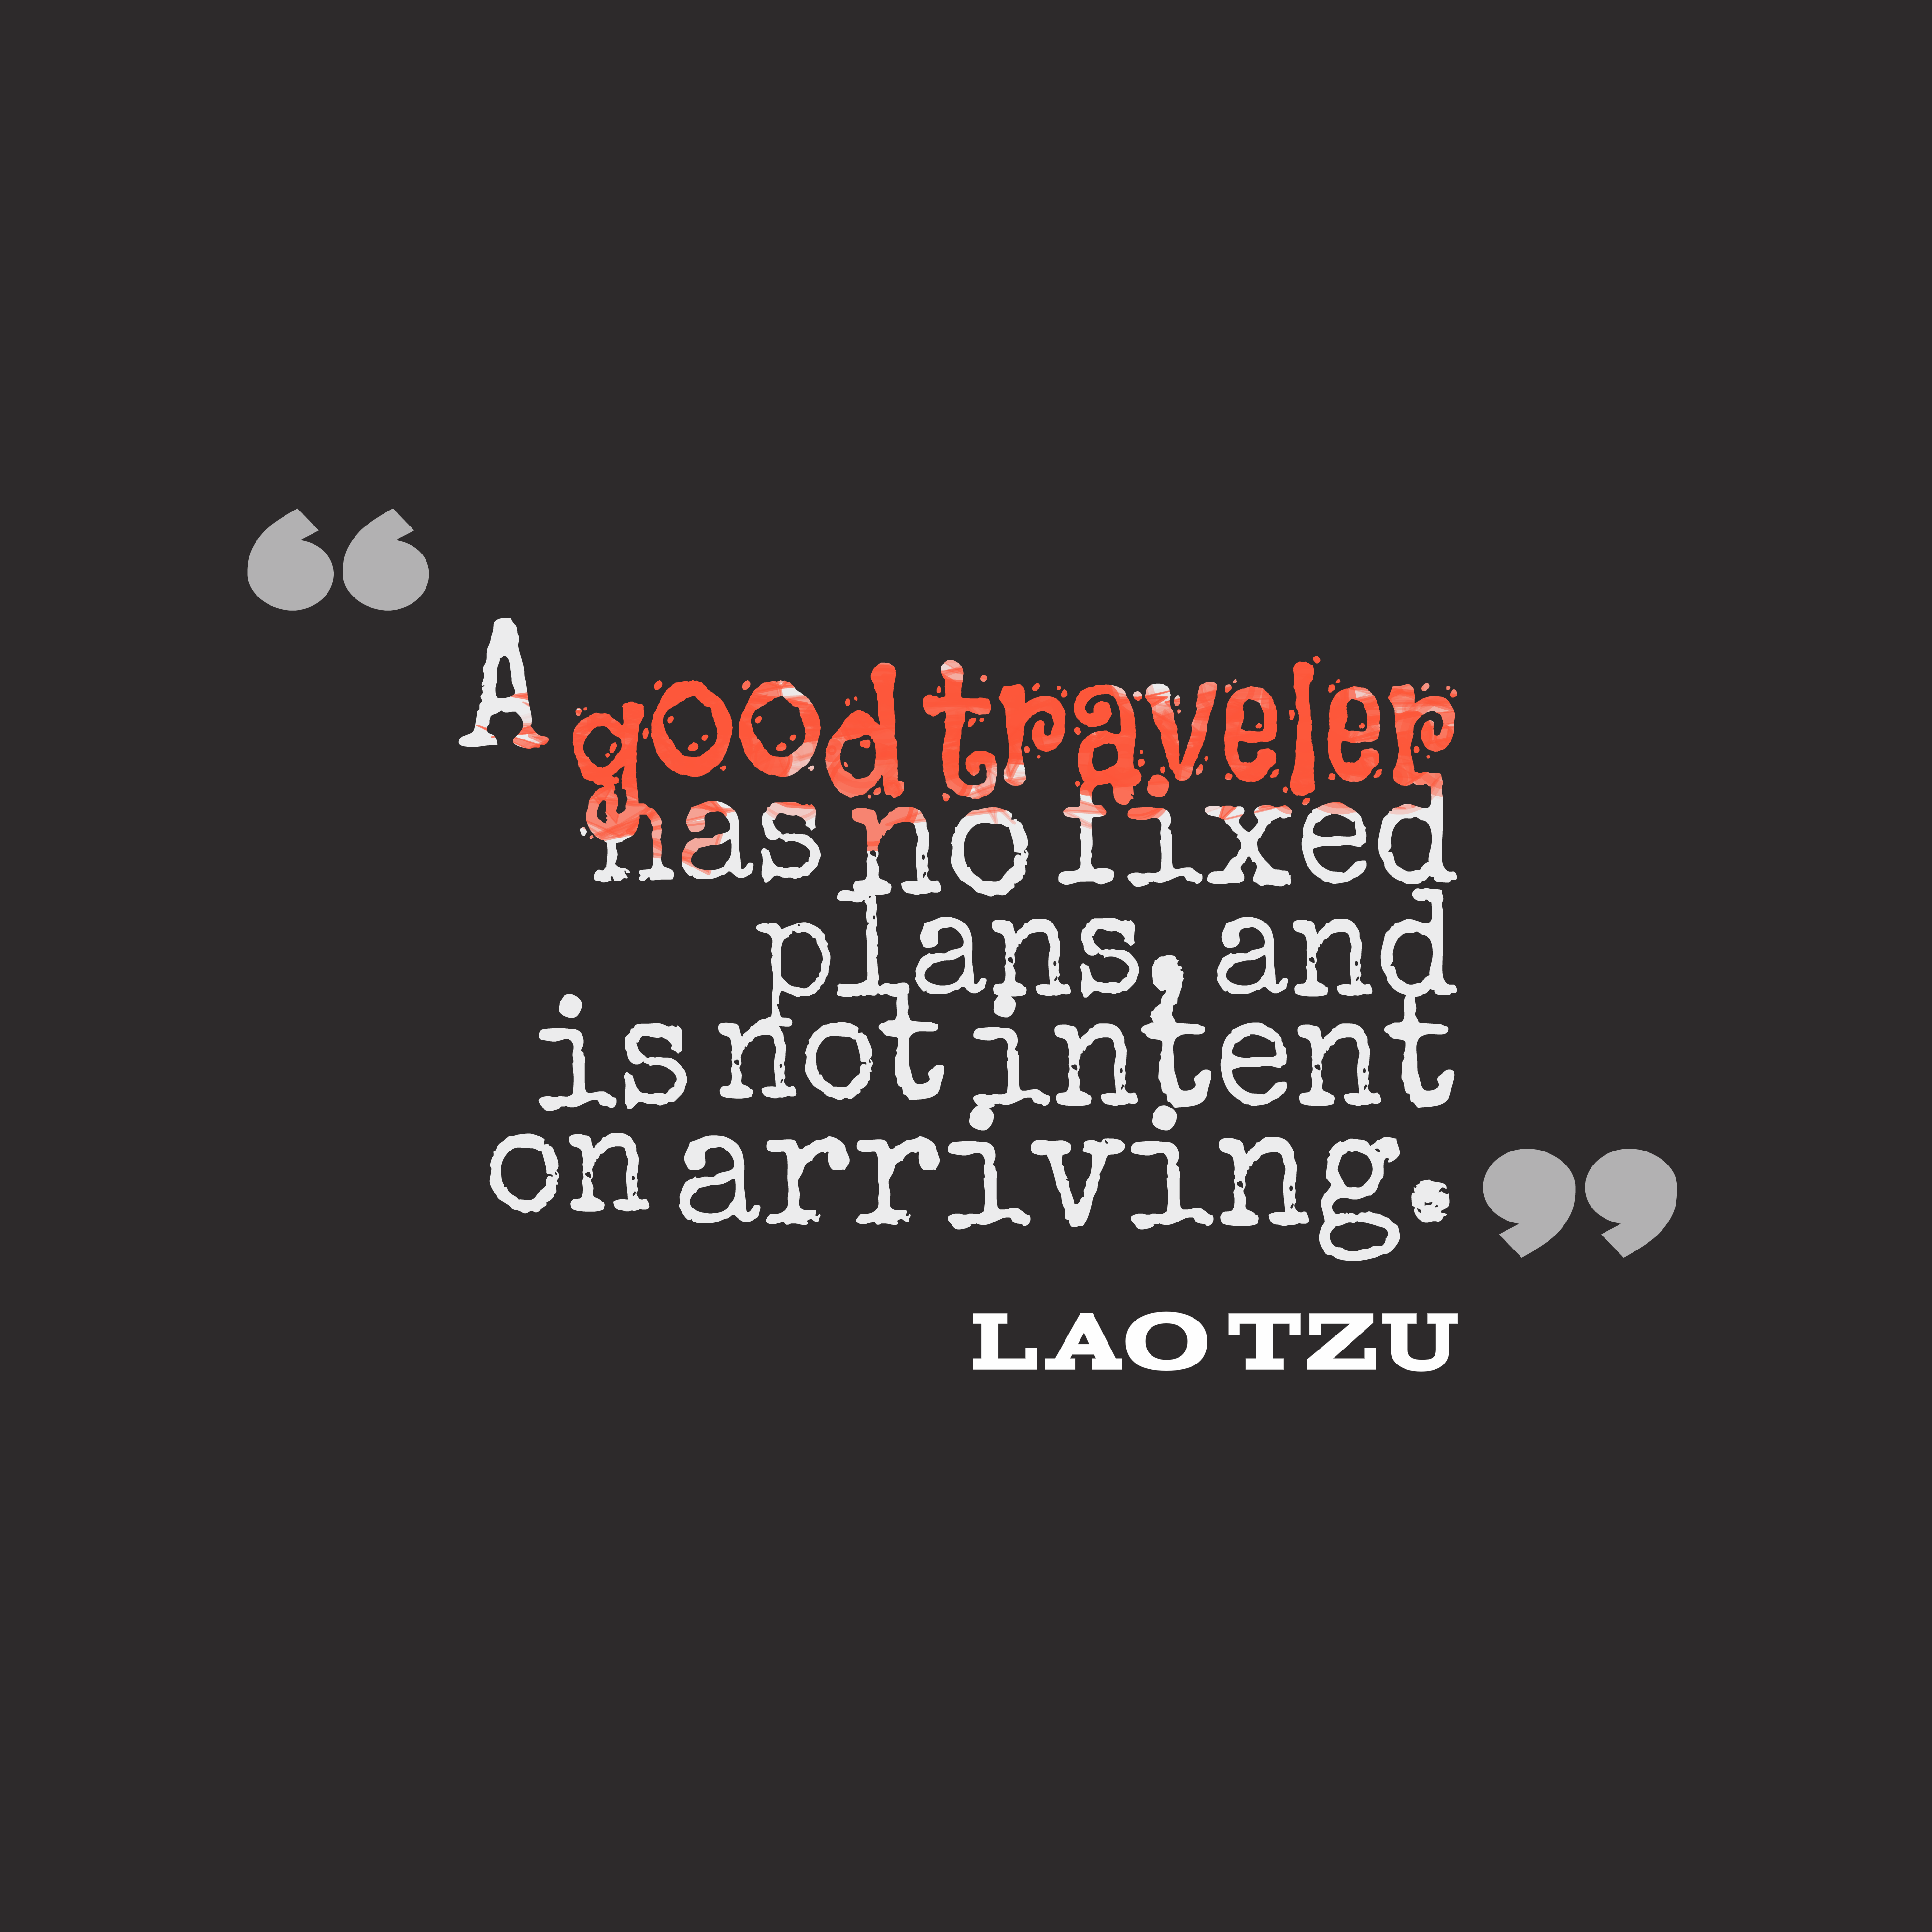 Quotes image of A good traveler has no fixed plans, and is not intent on arriving.